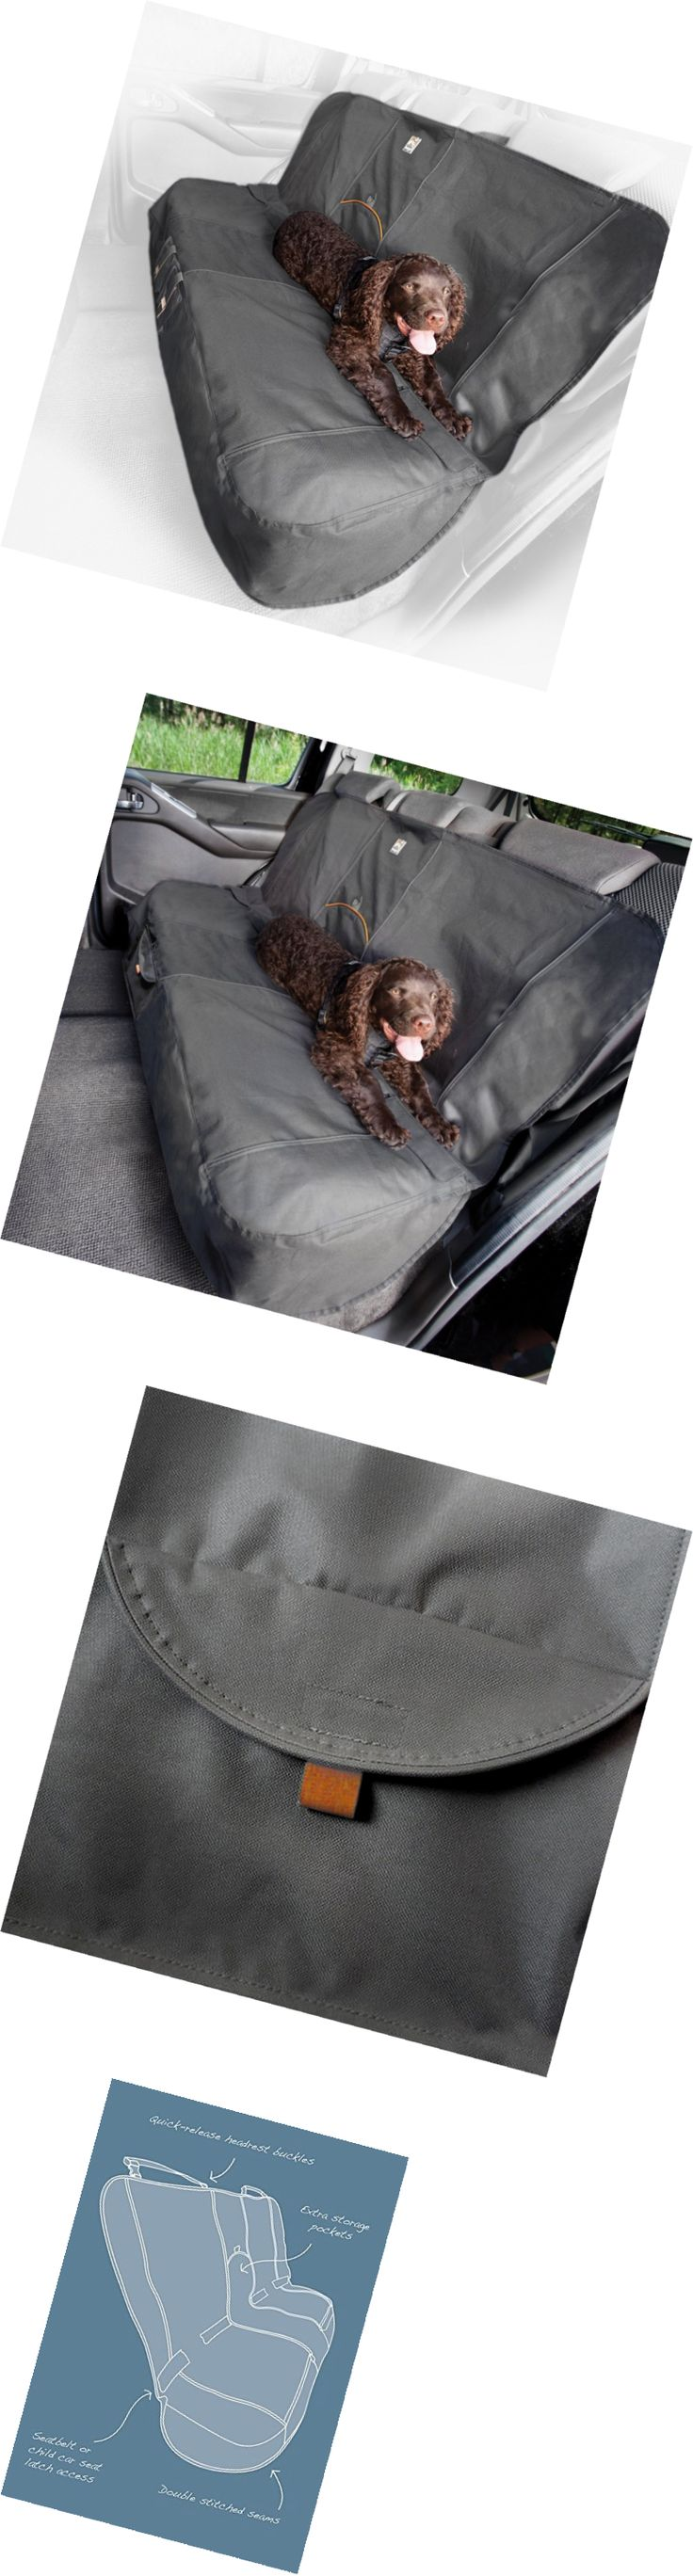 Car Seat Covers 117426: Kurgo Waterproof Car Bench Seat Cover For Dogs - Lifetime Warranty -> BUY IT NOW ONLY: $43.27 on eBay!